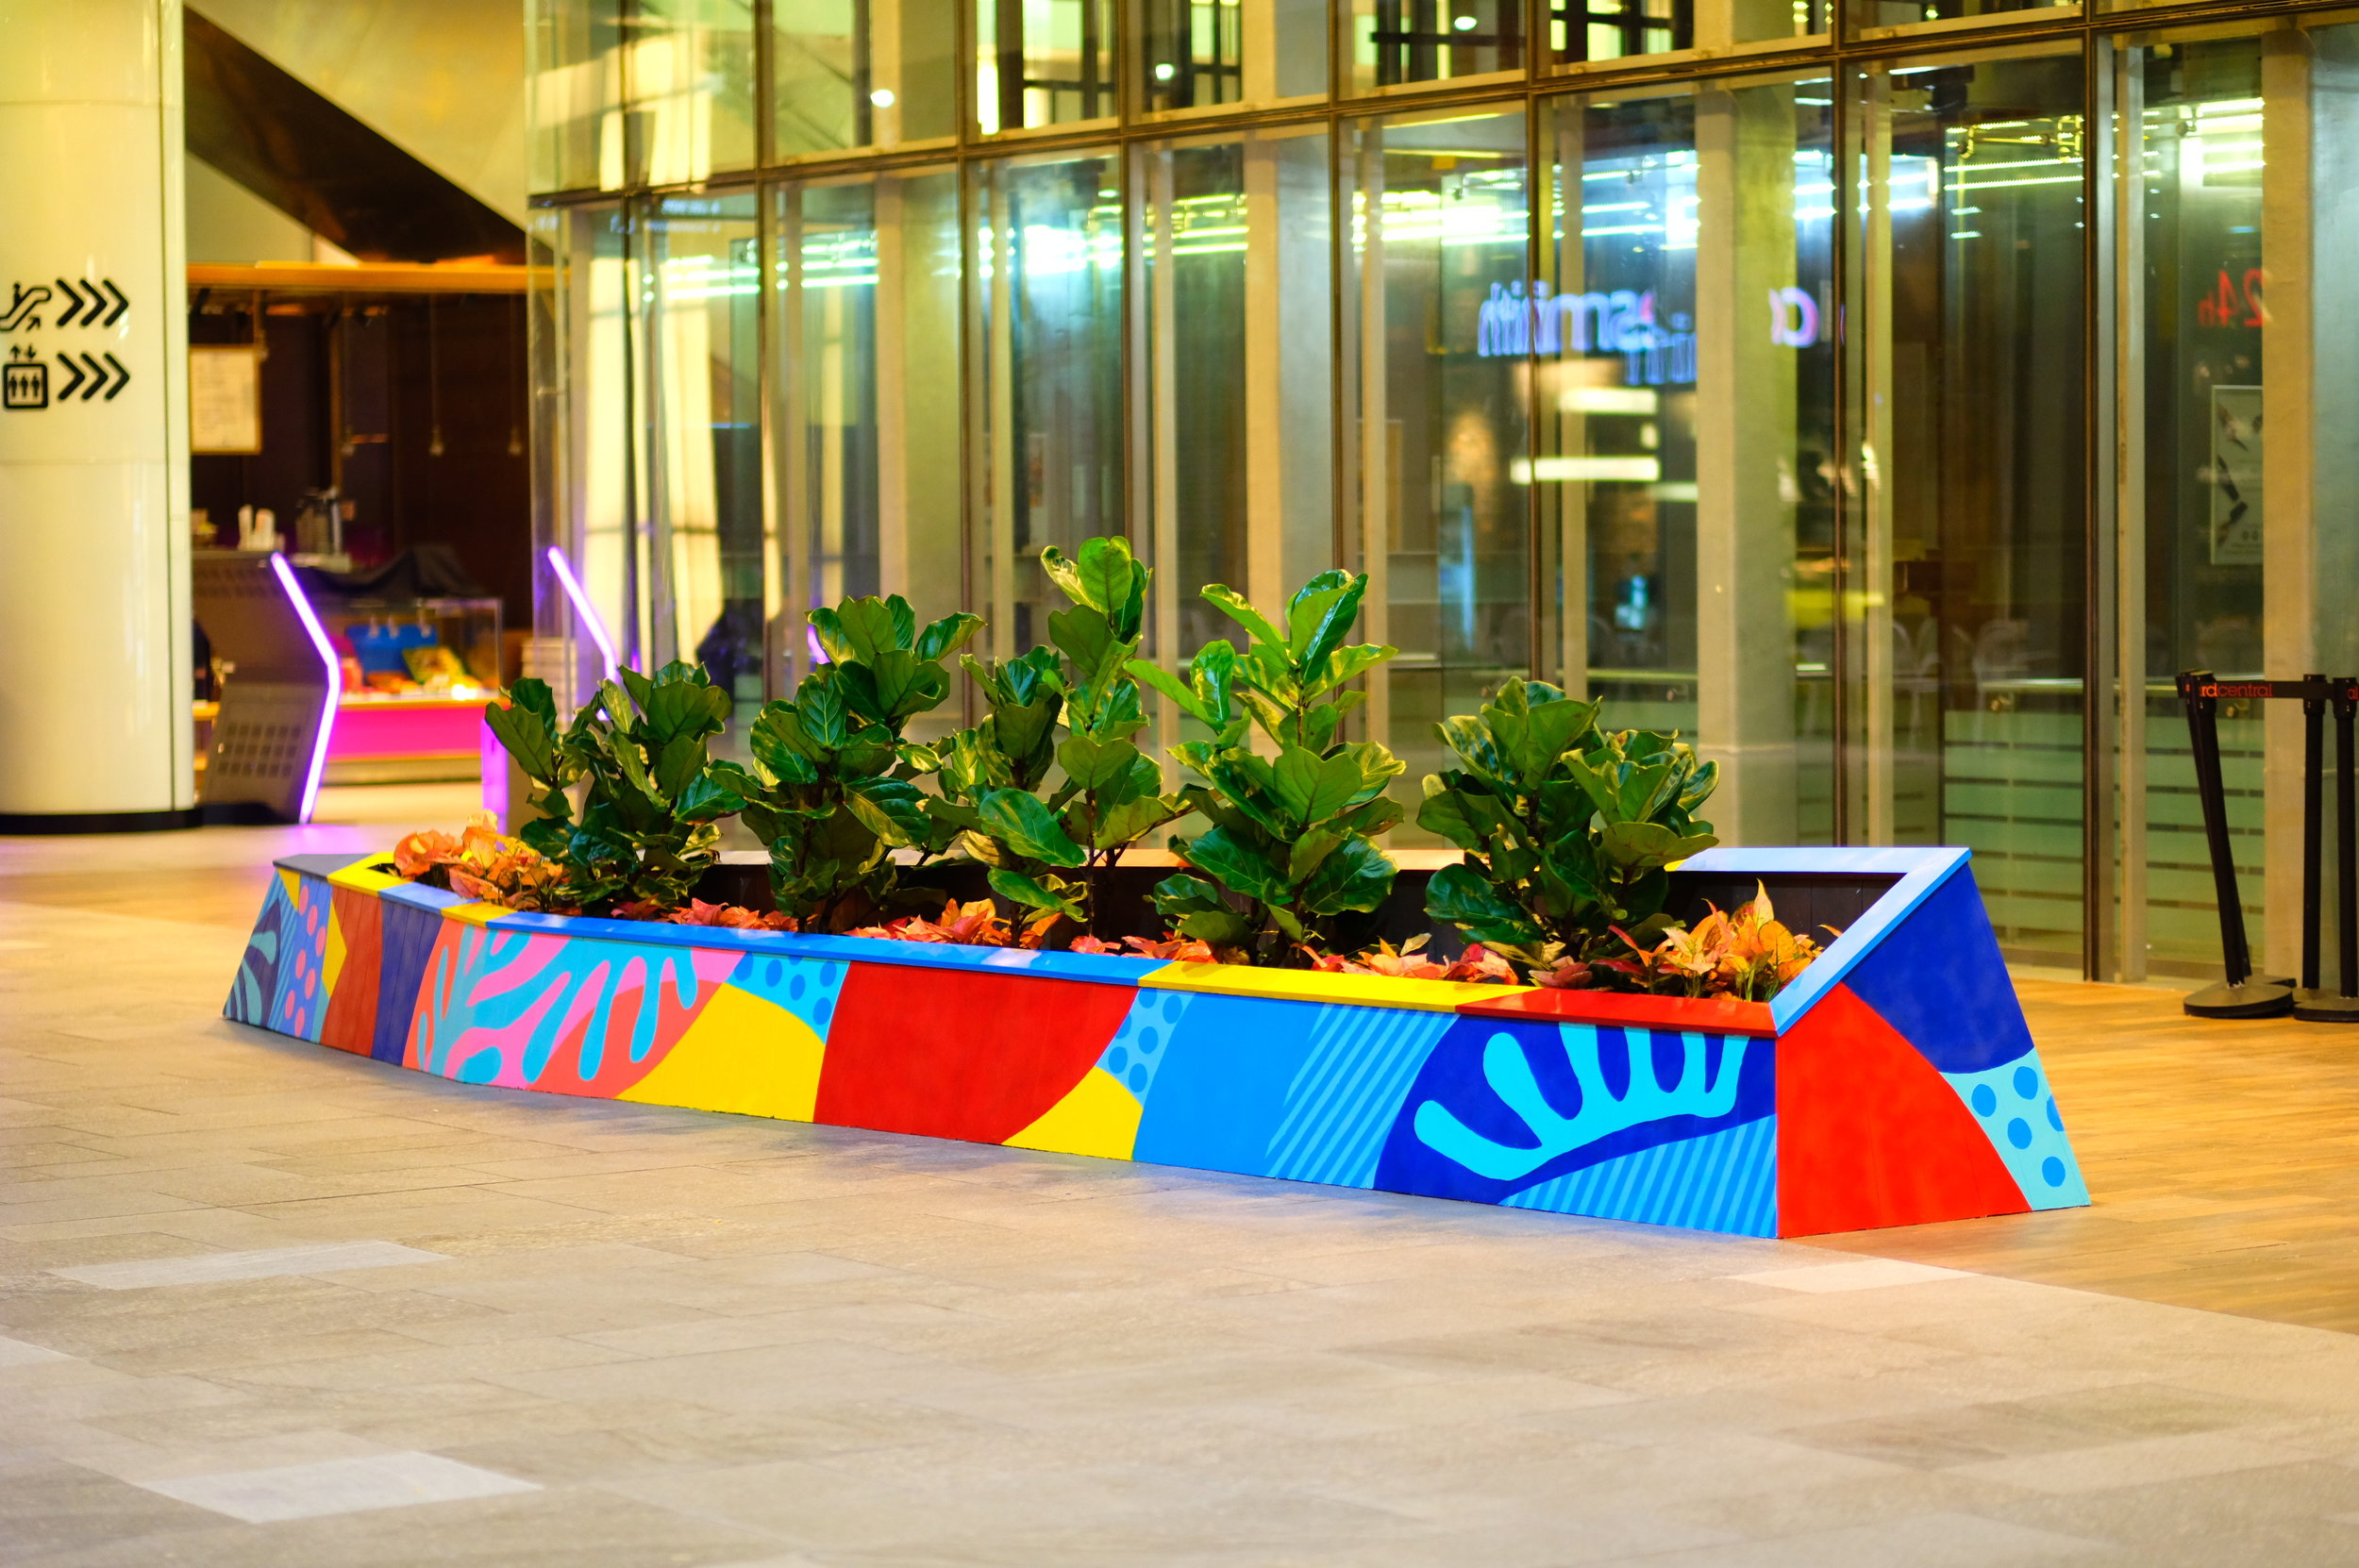 Planter  @ Orchard Central